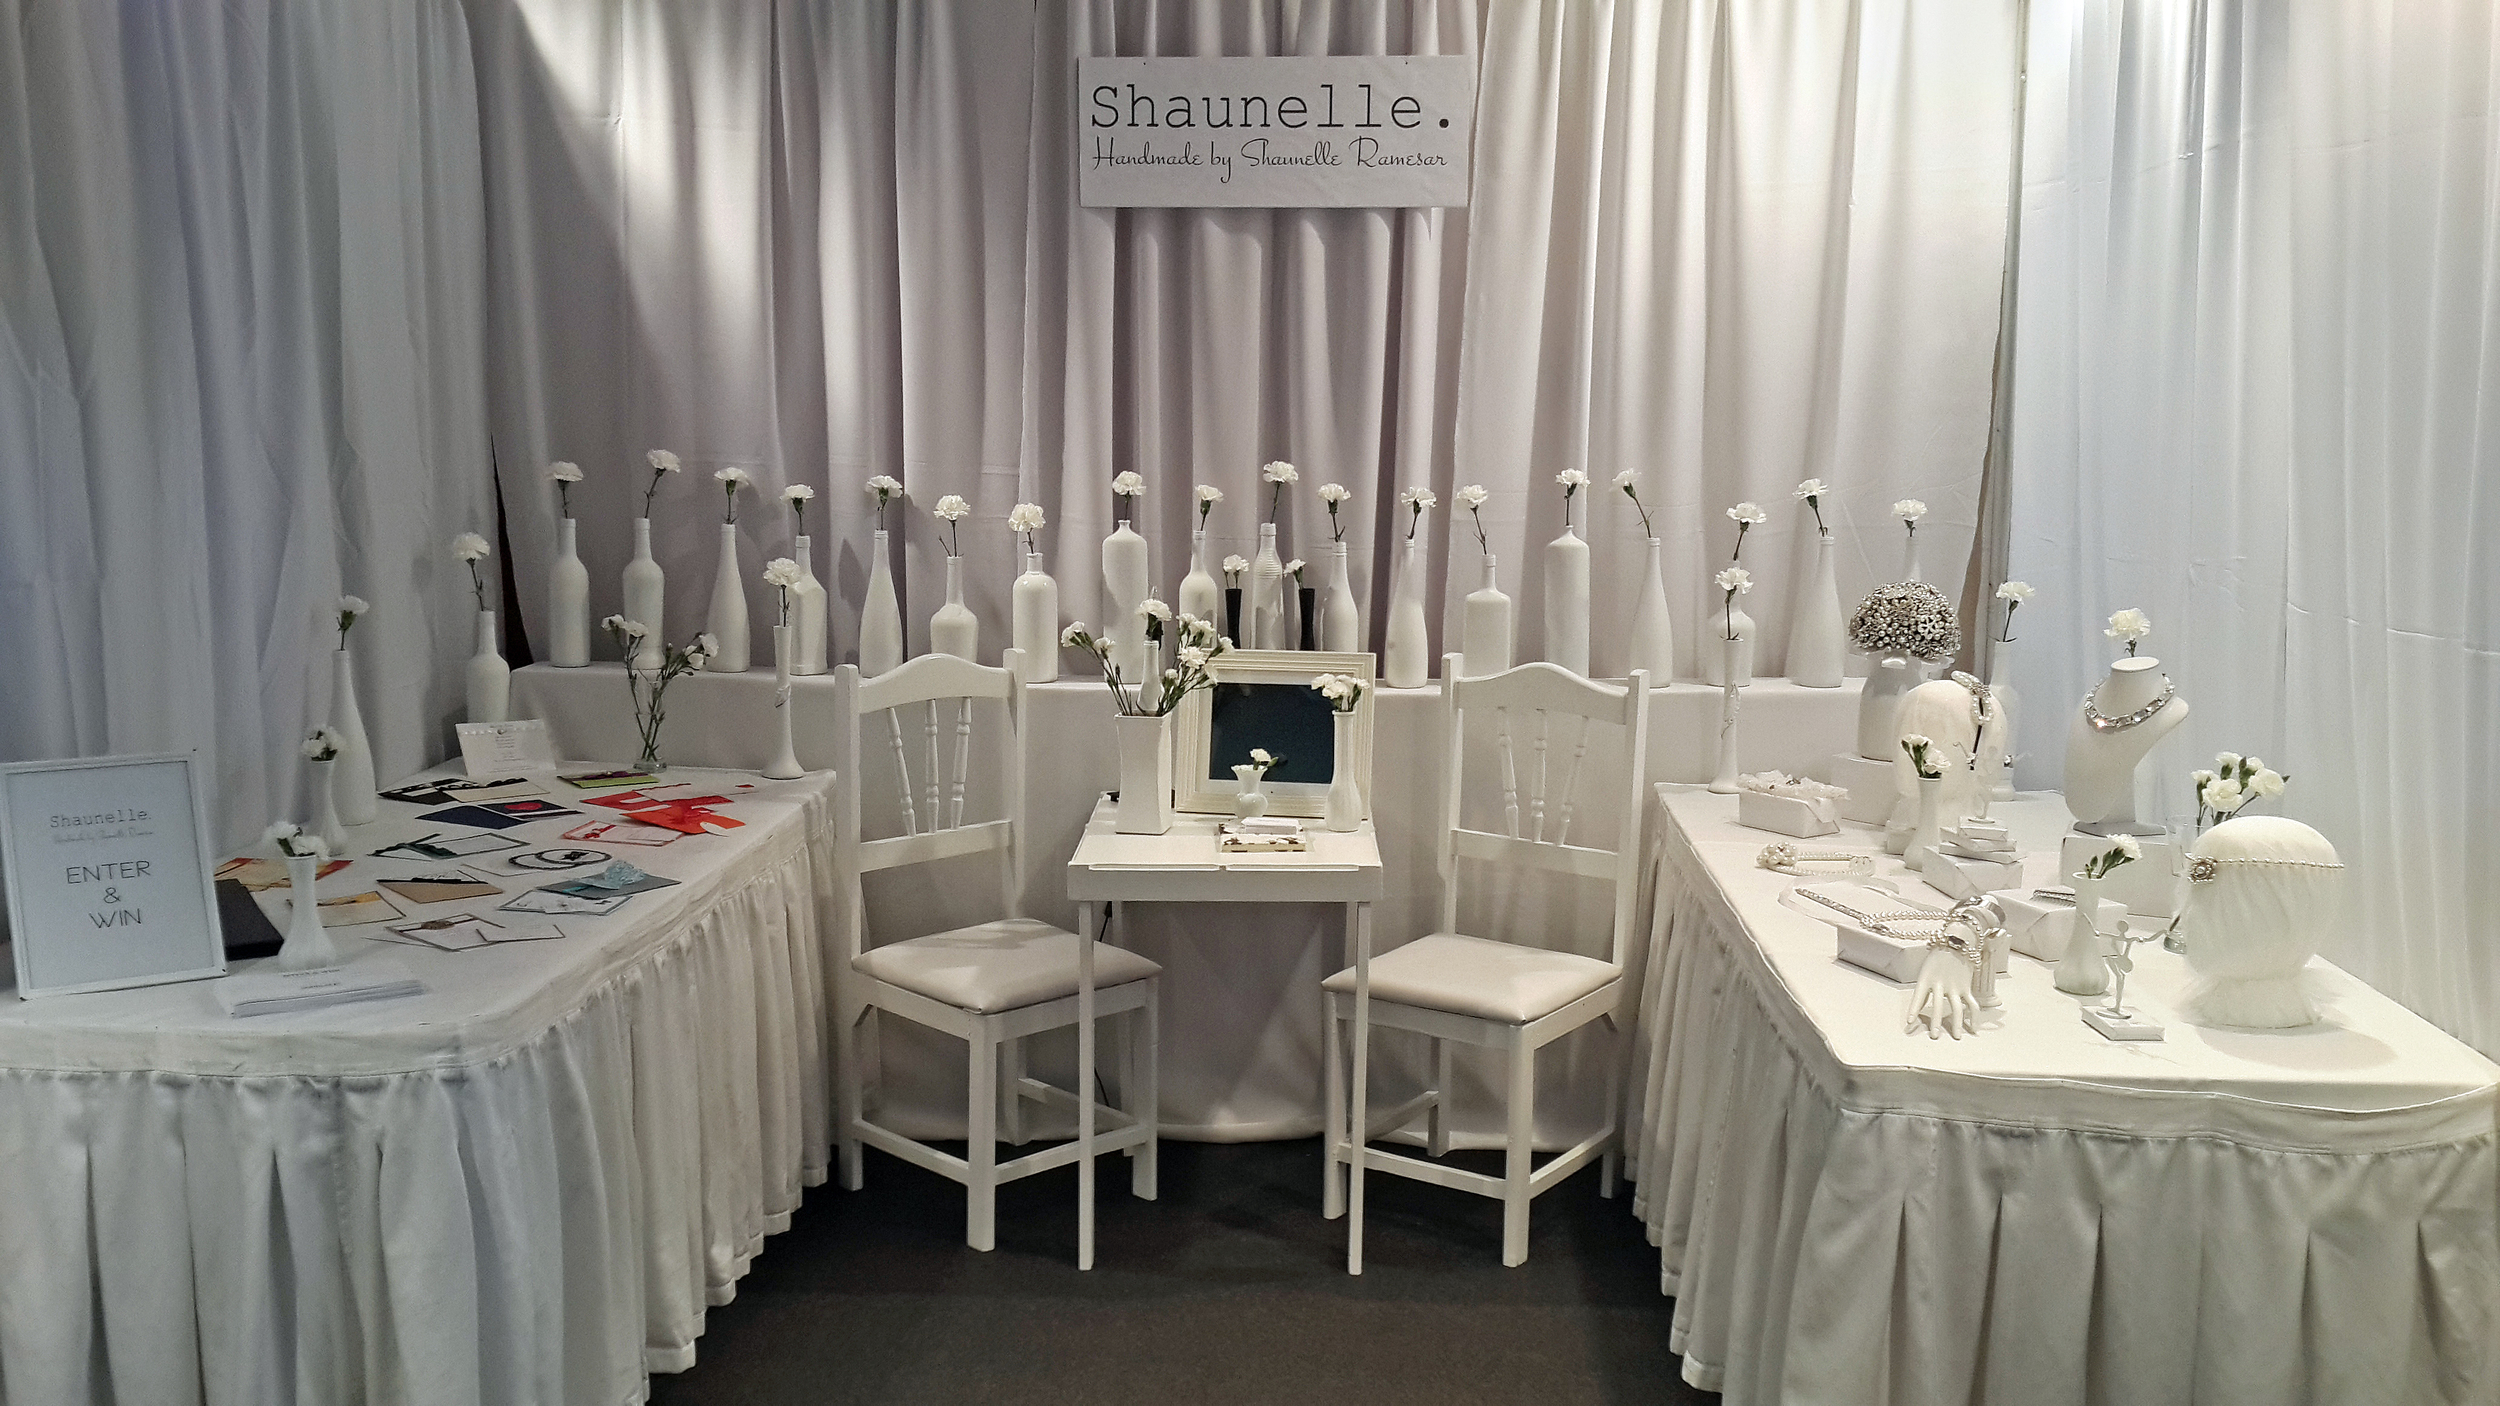 Shaunelle. Booth presentation details featuring a minimal all white design with fresh flowers accents. The space received an overwhelming response.